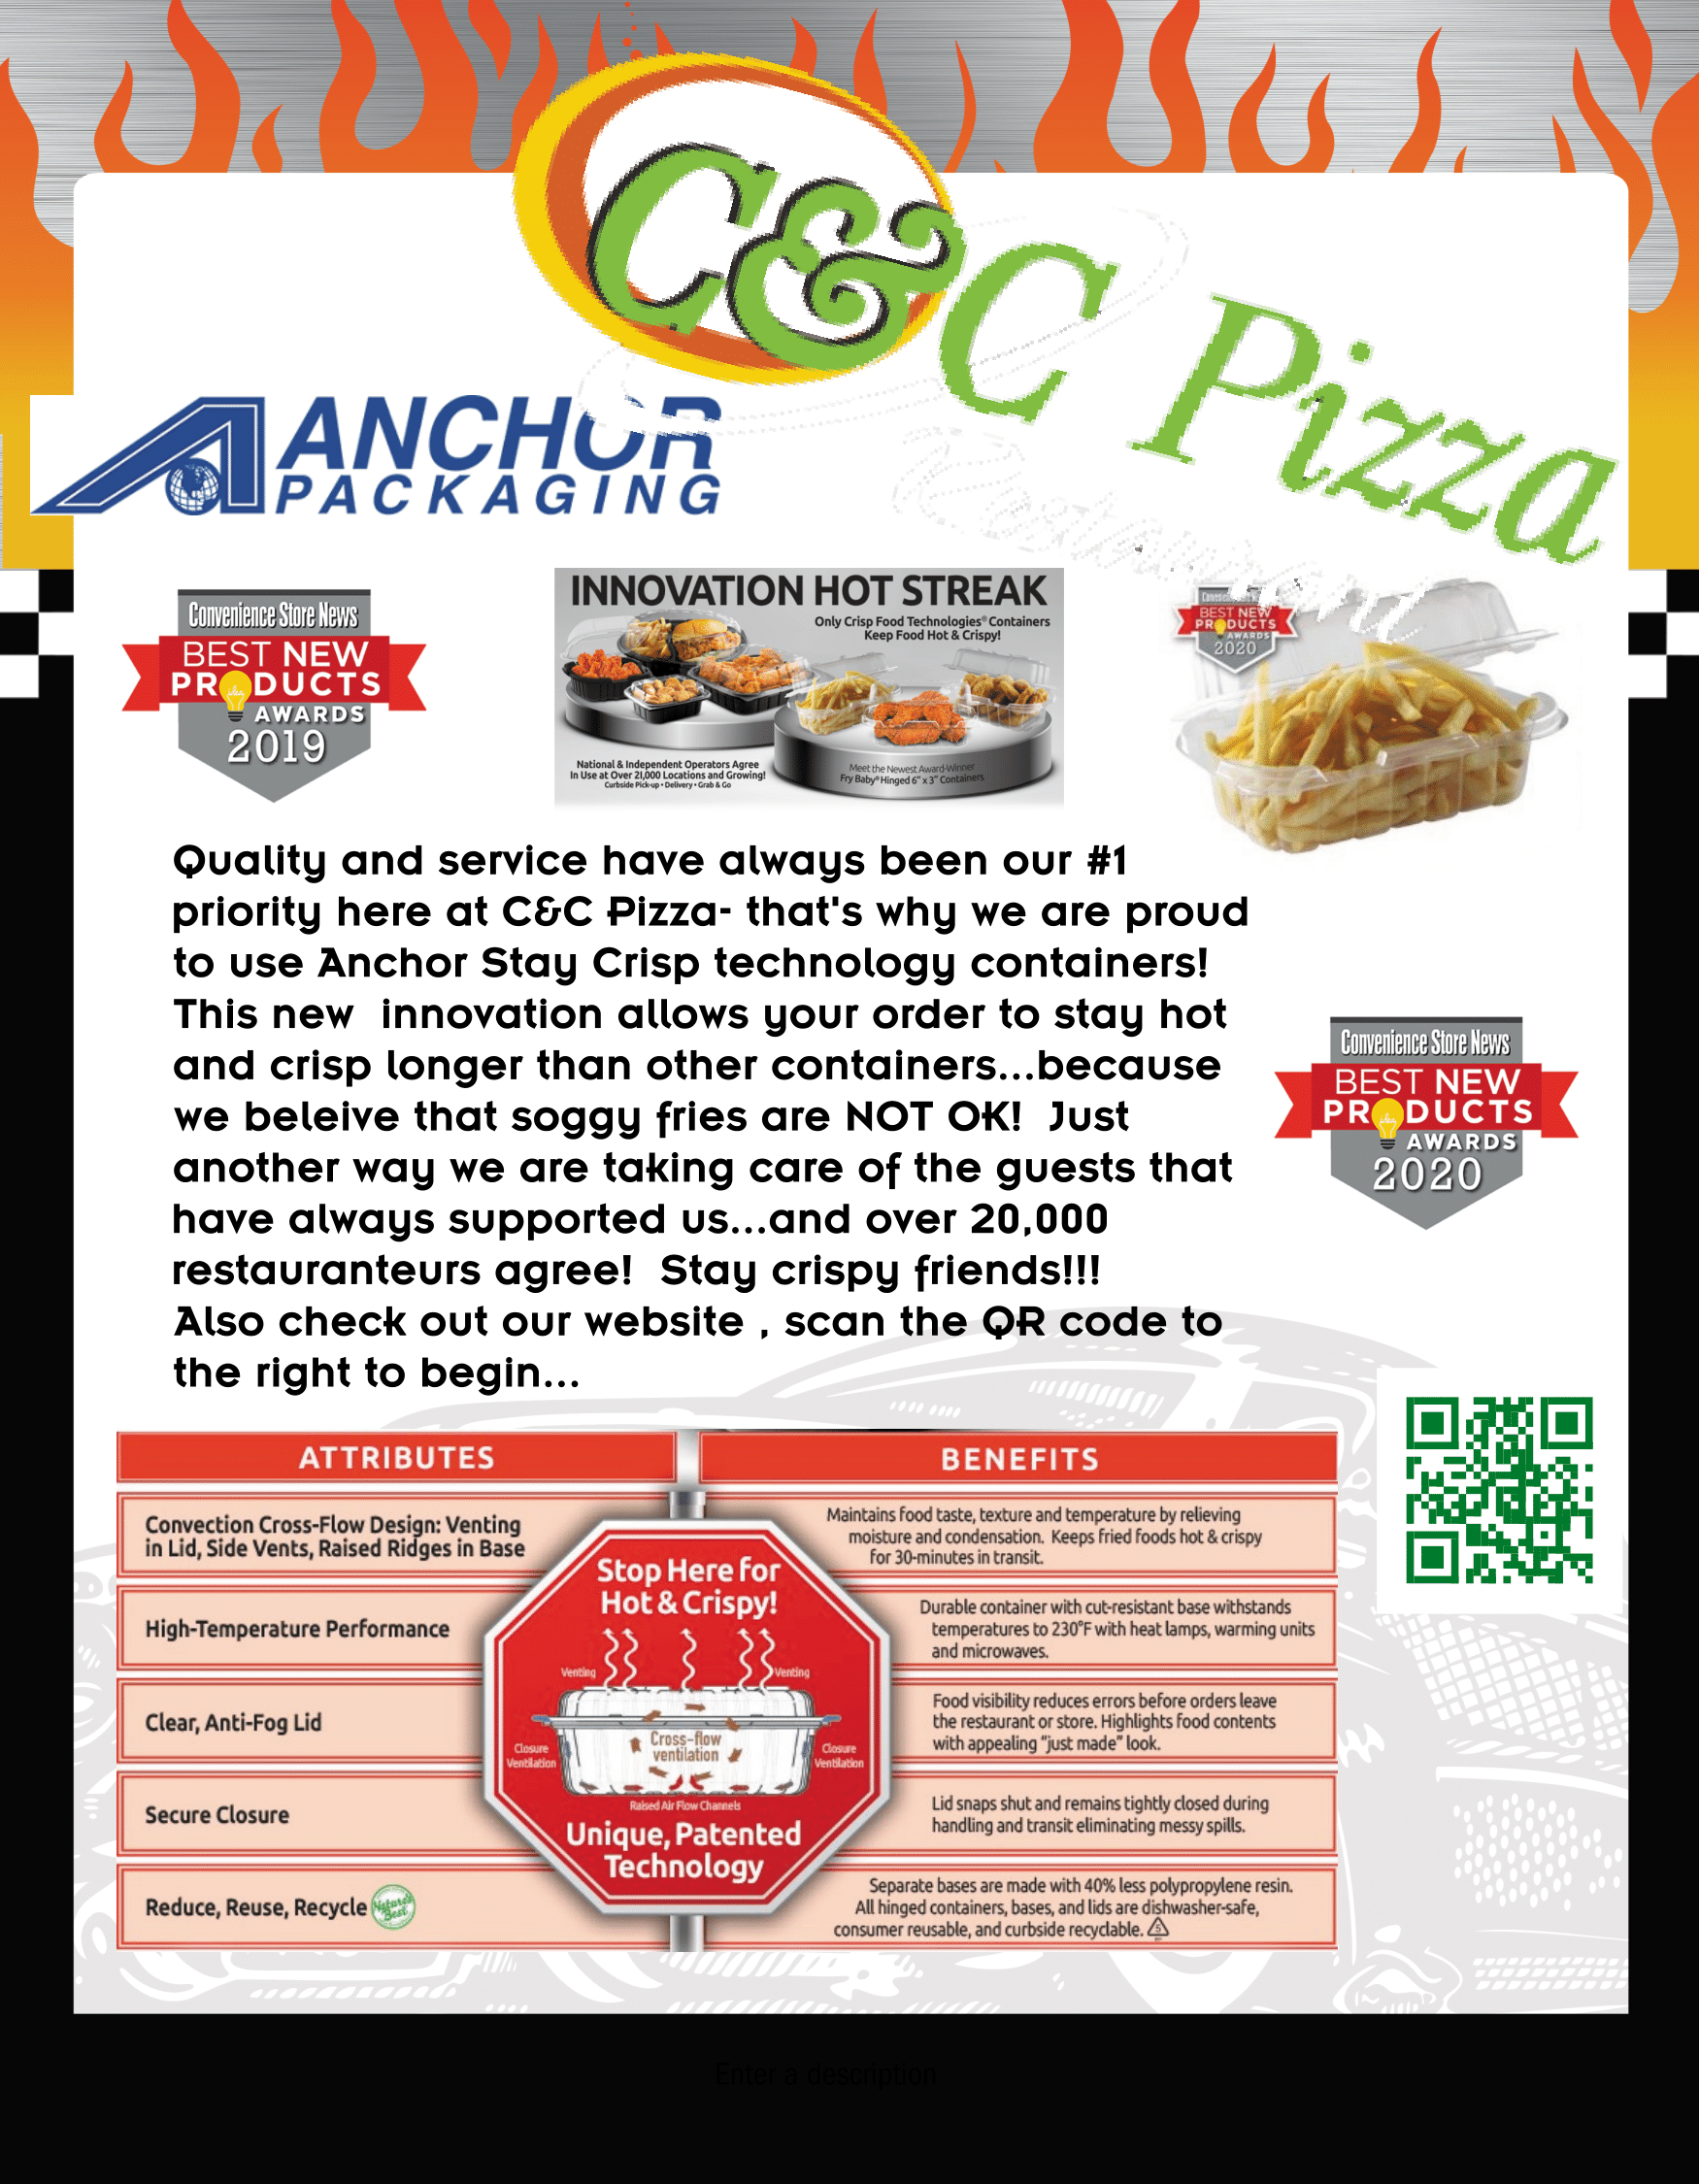 """C&C Pizza Restaurant logo. Anchor Packaging logo. Convenience Store News Best New Products Awards 2019 & 2020. Quality and service have always been our #1 priority here at C&C Pizza- that's why we are proud to use Anchor Stay Crisp technology containers! This new innovation allows your order to stay hot and crisp longer than other containers... because we believe that soggy fries are NOT OK! Just another way we are taking care of the guests that have always supported us... and over 20,000 restauranteurs agree! Stay crispy friends!!! Also check out our website, scan the QR code to the right to begin... Attributes/Benefits: Convection Cross-Flow Design: Venting in Lid, Side Vents, Raised Ridges in Base - Maintains food taste, texture and temperature by relieving moisture and condensation. Keeps fried foods hot & crispy fro 30-minutes in transit. High-Temperature Performance - Durable container with cut-resistant base withstands temperatures to 230 degrees F with heat lamps, warming units and microwaves. Clear, Anti-Fog Lid - Food visibility reduces errors before orders leave the restaurant or store. Highlights food contents with appealing """"just made"""" look. Secure Closure - Lid snaps shut and remains tightly closed during handling and transit eliminating messy spills. Reduce, Reuse, Recycle - Separate bases are made with 40% less polyproplyene resin. All hinged containers, bases and lids are dishwasher-safe, consumer reusable, and curbside recyclable. Stop here for Hot & Crispy! Uniqu, Patented Technology."""